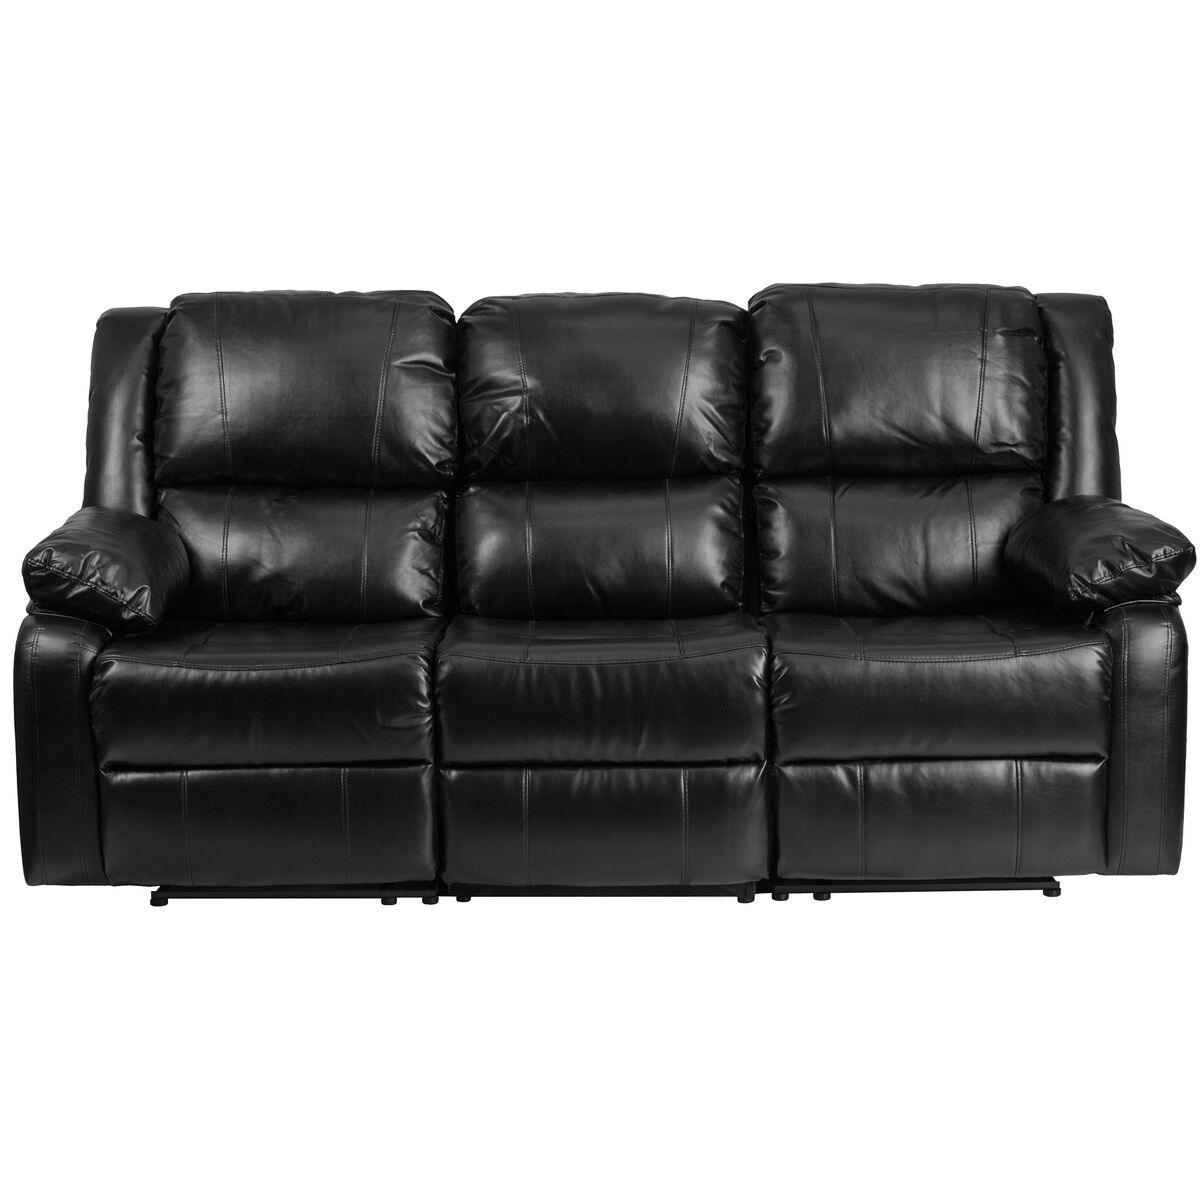 Black Leather Recliner Sofa BT-70597-SOF-GG | Bizchair.com